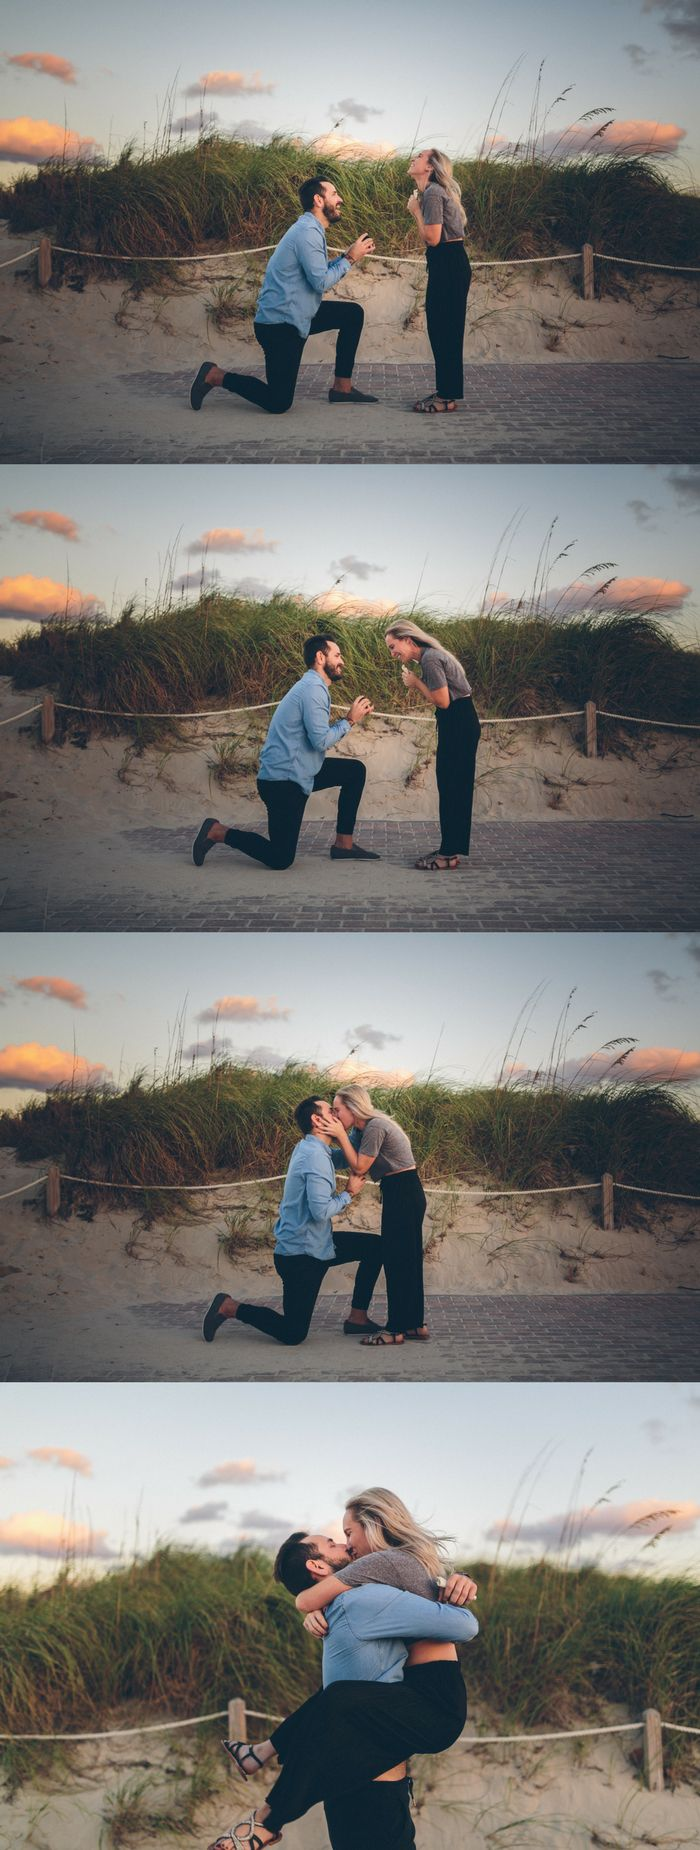 As soon as she saw him waiting to propose, she ran straight to him to say yes. <3